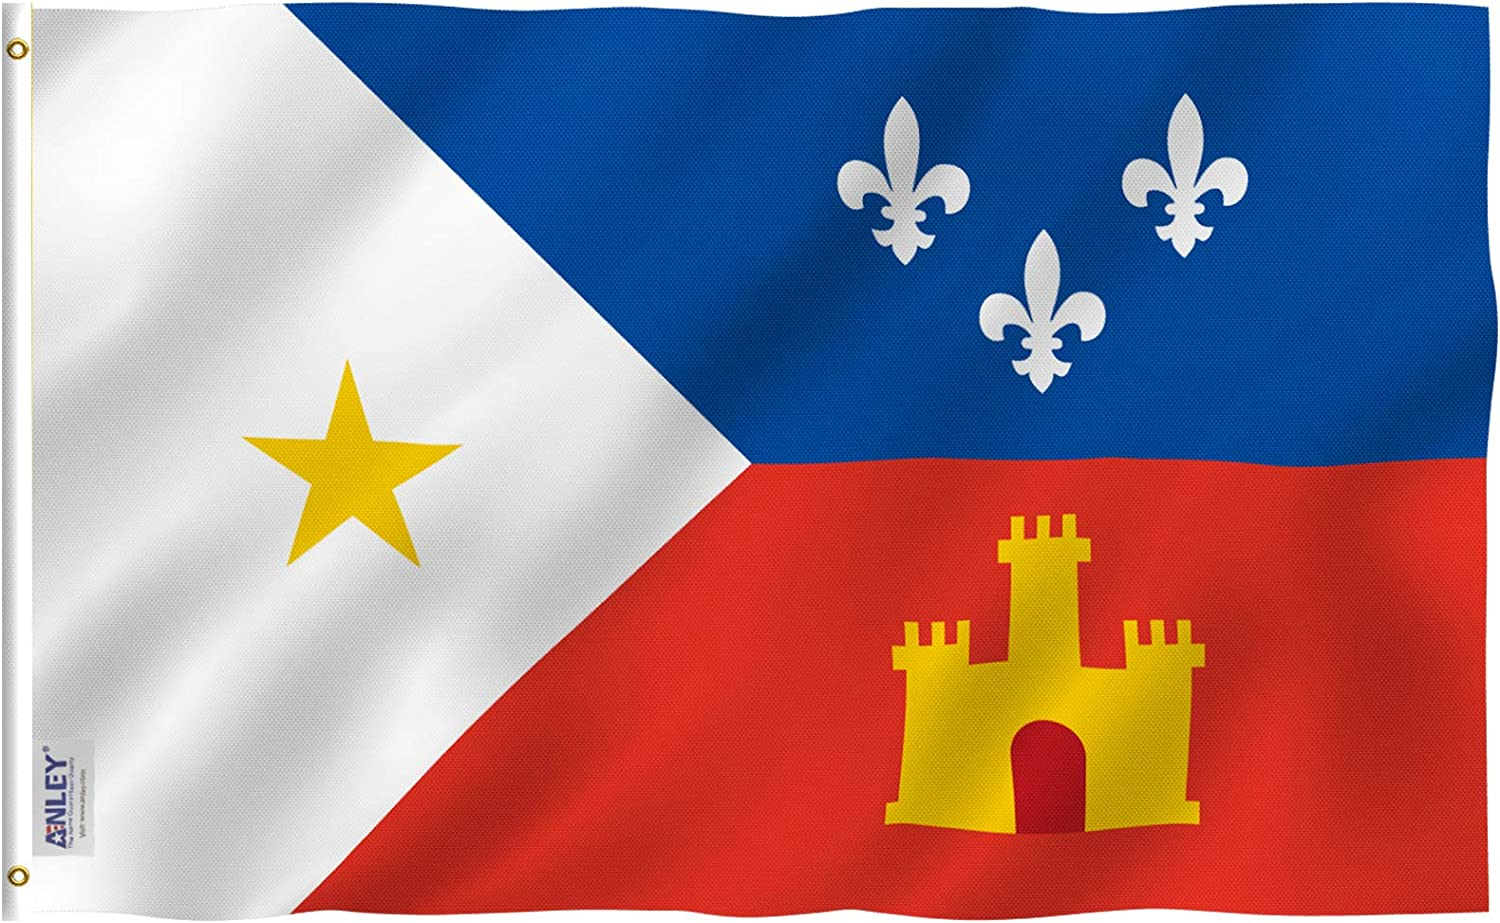 Anley Fly Breeze 3x5 Foot Ethnic Acadian Flag - Vivid Color and Fade Proof - Canvas Header and Double Stitched - Cajun Acadiana Flags Polyester with Brass Grommets 3 X 5 Ft